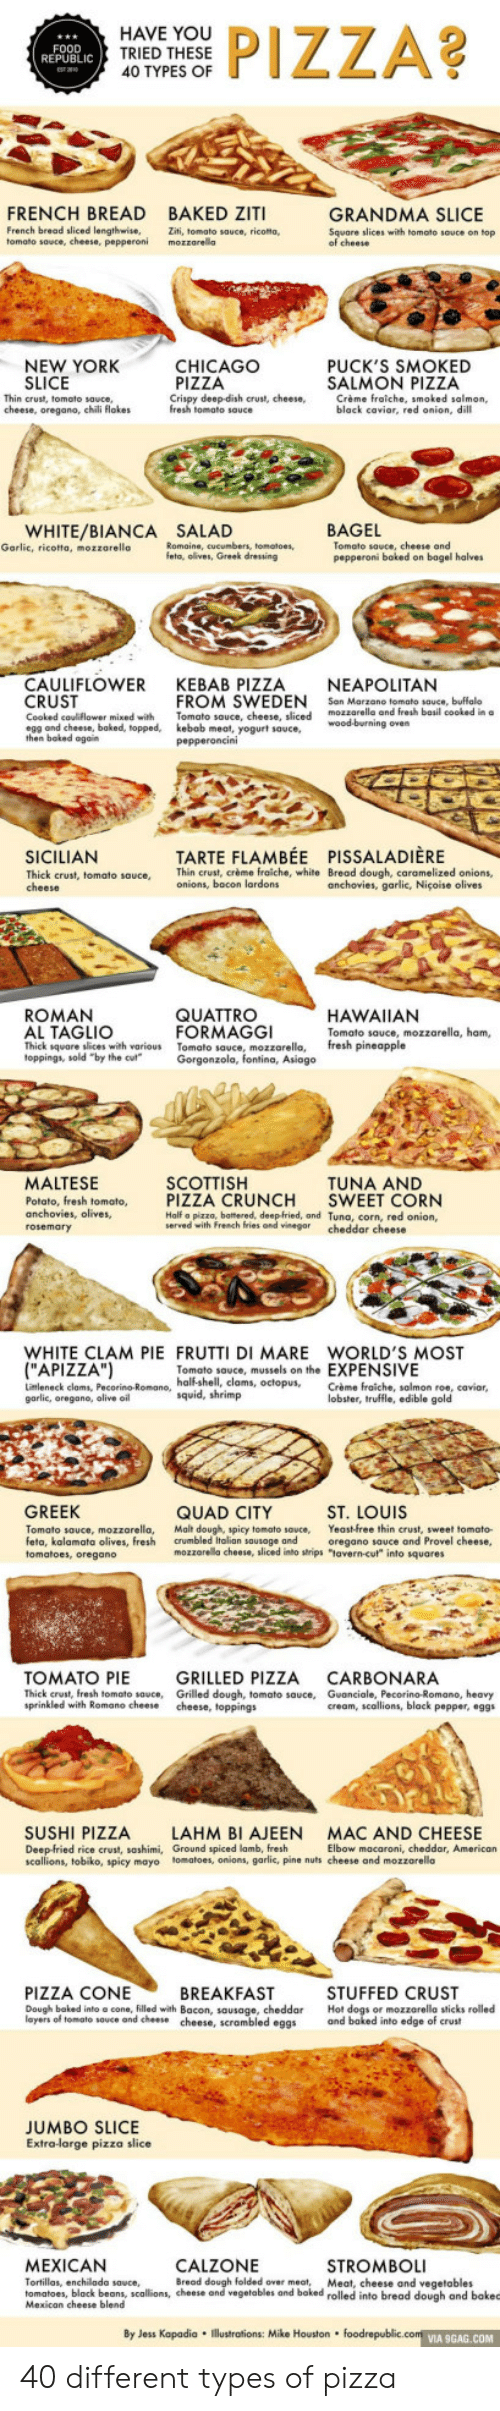 """Pizza Slice: HAVE YOU  PIZZA?  FOOD  REPUBLIC  TRIED THESE  40 TYPES OF  FRENCH BREAD BAKED ZITI  GRANDMA SLICE  French bread sliced lengthwise,  tomato souce, cheese, pepperoni  Ziti, tomato sauce, ricota,  mozzarella  Square slices with tomato souce on top  of cheese  NEW YORK  SLICE  CHICAGO  PIZZA  Crispy deep-dish crust, cheese,  PUCK'S SMOKED  SALMON PIZZA  Crème fraiche, smoked salmon,  black caviar, red onion, dill  Thin crust, tomato sauce,  cheese, oregano, chili flokes  fresh tomato sauce  WHITE/BIANCA  Garlic, ricotta, mozzarello  BAGEL  Tomato sauce, cheese and  pepperoni boked on bagel halves  SALAD  Romaine, cucumbers, tomatoes,  feta, olives, Greek dressing  CAULIFLOWER KEBAB PIZZA  CRUST  NEAPOLITAN  San Marzano tomato sauce, buffalo  mozzarelle and fresh basil cooked in a  FROM SWEDEN  Tomato souce, cheese, sliced  kebab meat, yogurt sauce,  pepperoncini  Cooked cauliflower mixed with  egg and cheese, baked, topped,  then baked again  wood-burning oven  TARTE FLAMBE PISSALADIERE  Thin crust, crème fraiche, white Bread dough, caramelized onions,  onions, bocon lardons  SICILIAN  Thick crust, tomato sauce,  cheese  anchovies, garlic, Niçoise olives  ROMAN  QUATTRO  FORMAGGI  Tomato sauce, mozzarella,  Gorgonzola, fontina, Asiago  HAWAIIAN  AL TAGLIO  Thick square slices with various  toppings, sold """"by the cul""""  Tomato sauce, mozzarella, ham,  fresh pineapple  MALTESE  SCOTTISH  PIZZA CRUNCH  Half a pizzo, battered, deep-fried, and Tuna, corn, red onion,  served with French fries and vinegar cheddar cheese  TUNA AND  SWEET CORN  Potato, fresh tomato,  anchovies, olives,  rosemary  WHITE CLAM PIE FRUTTI DI MARE WORLD'S MOST  (""""APIZZA"""")  Tomato souce, mussels on the EXPENSIVE  Limleneck clams, Pecorino-Romane, half-shell, clams, octopus,  garlic, oregane, olive oil  Crème fraiche, salmon roe, caviar,  lobster, truffle, edible gold  squid, shrimp  GREEK  QUAD CITY  Malt dough, spicy tomato sauce,  crumbled Italian sausage and  mozzarella cheese, sliced """